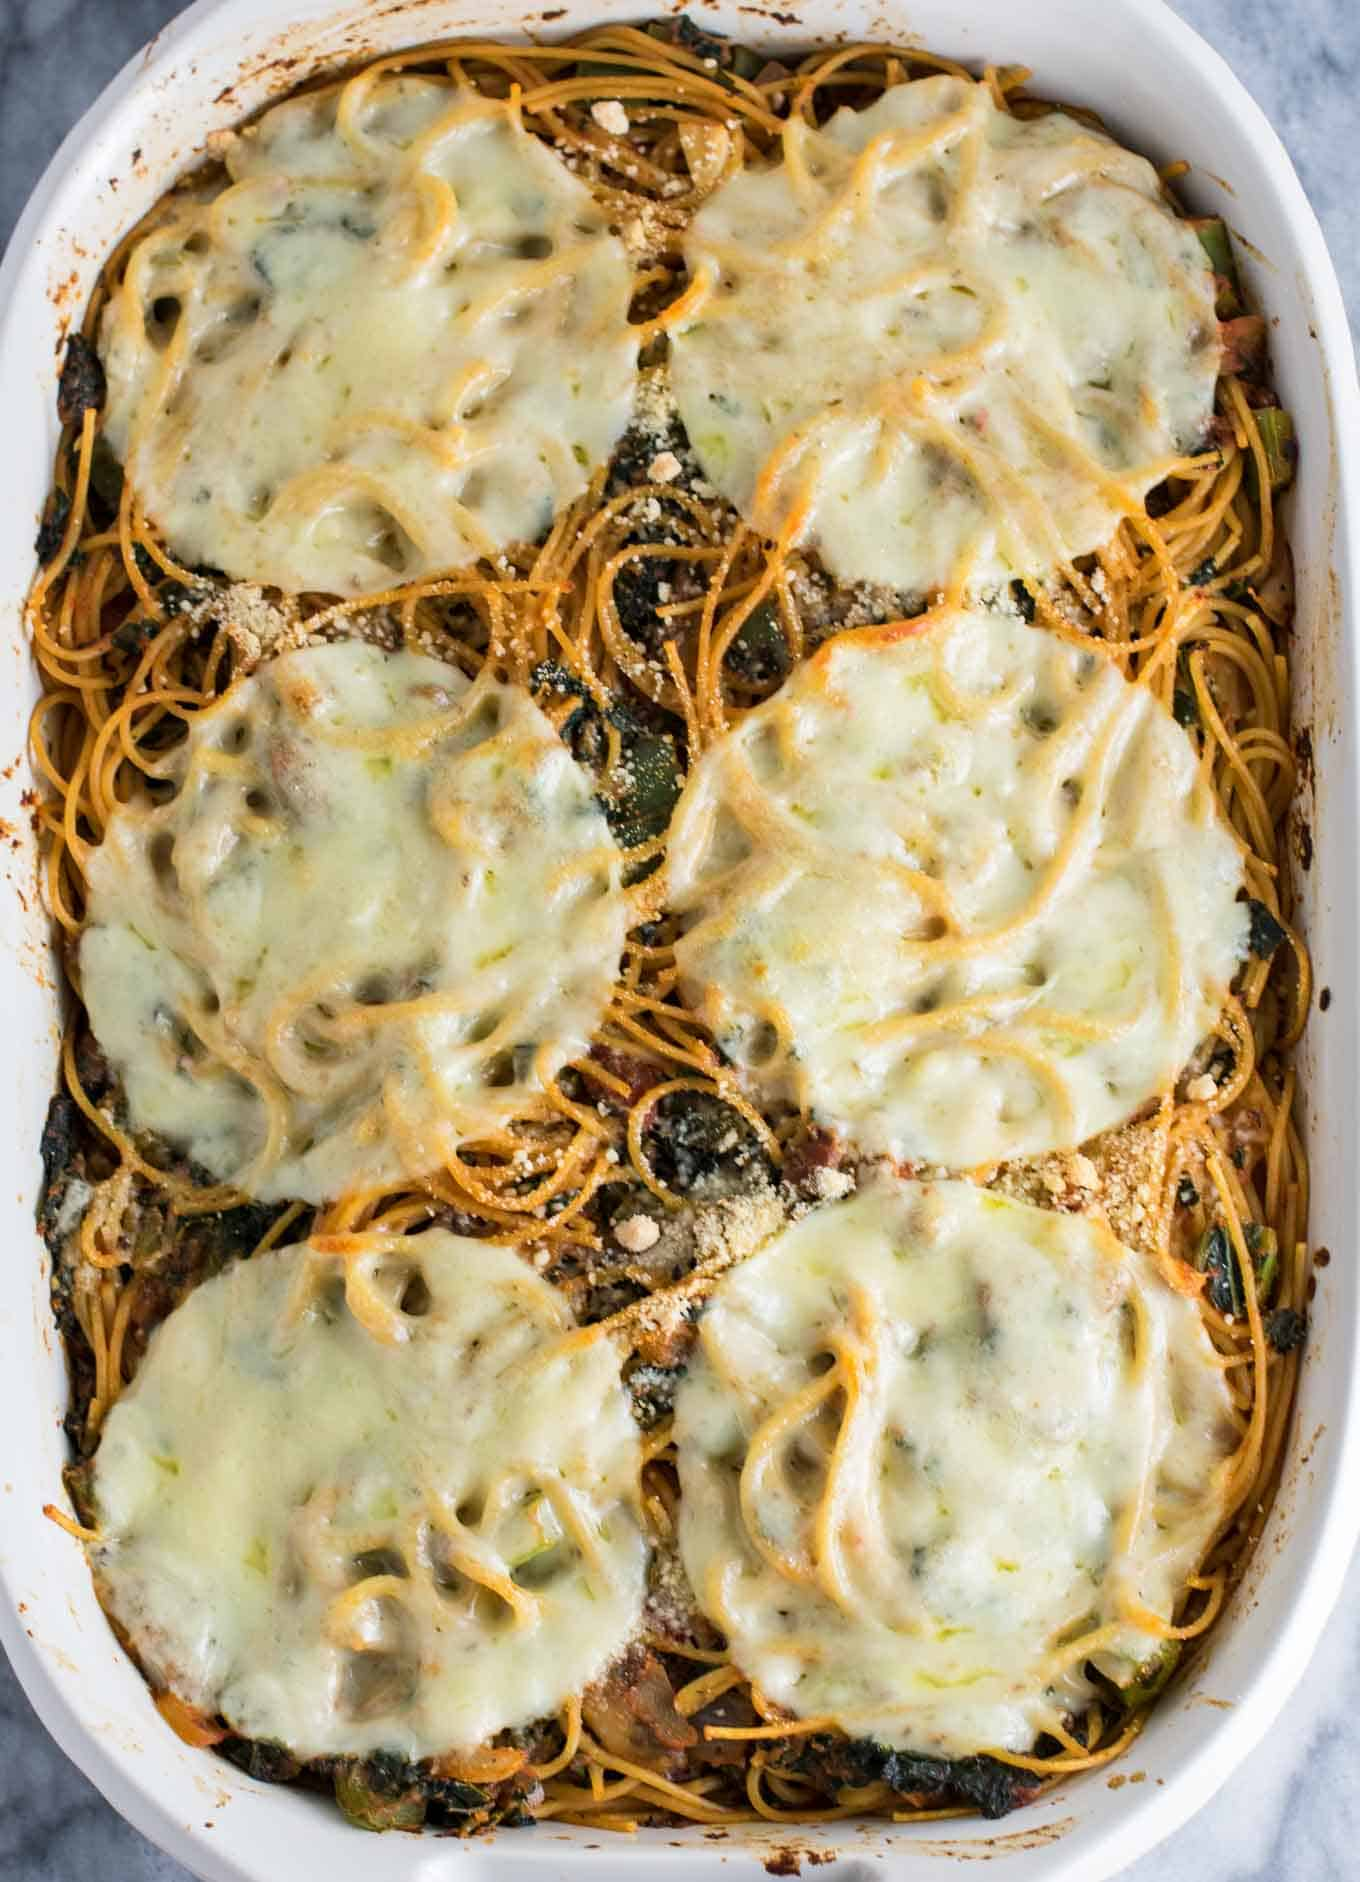 Healthy Baked Spaghetti Recipe – a healthier veggie packed way to get your pasta fix. Family friendly + easy weeknight dinner. #healthybakedspaghetti #vegetarian #dinner #bakedspaghetti #veggies